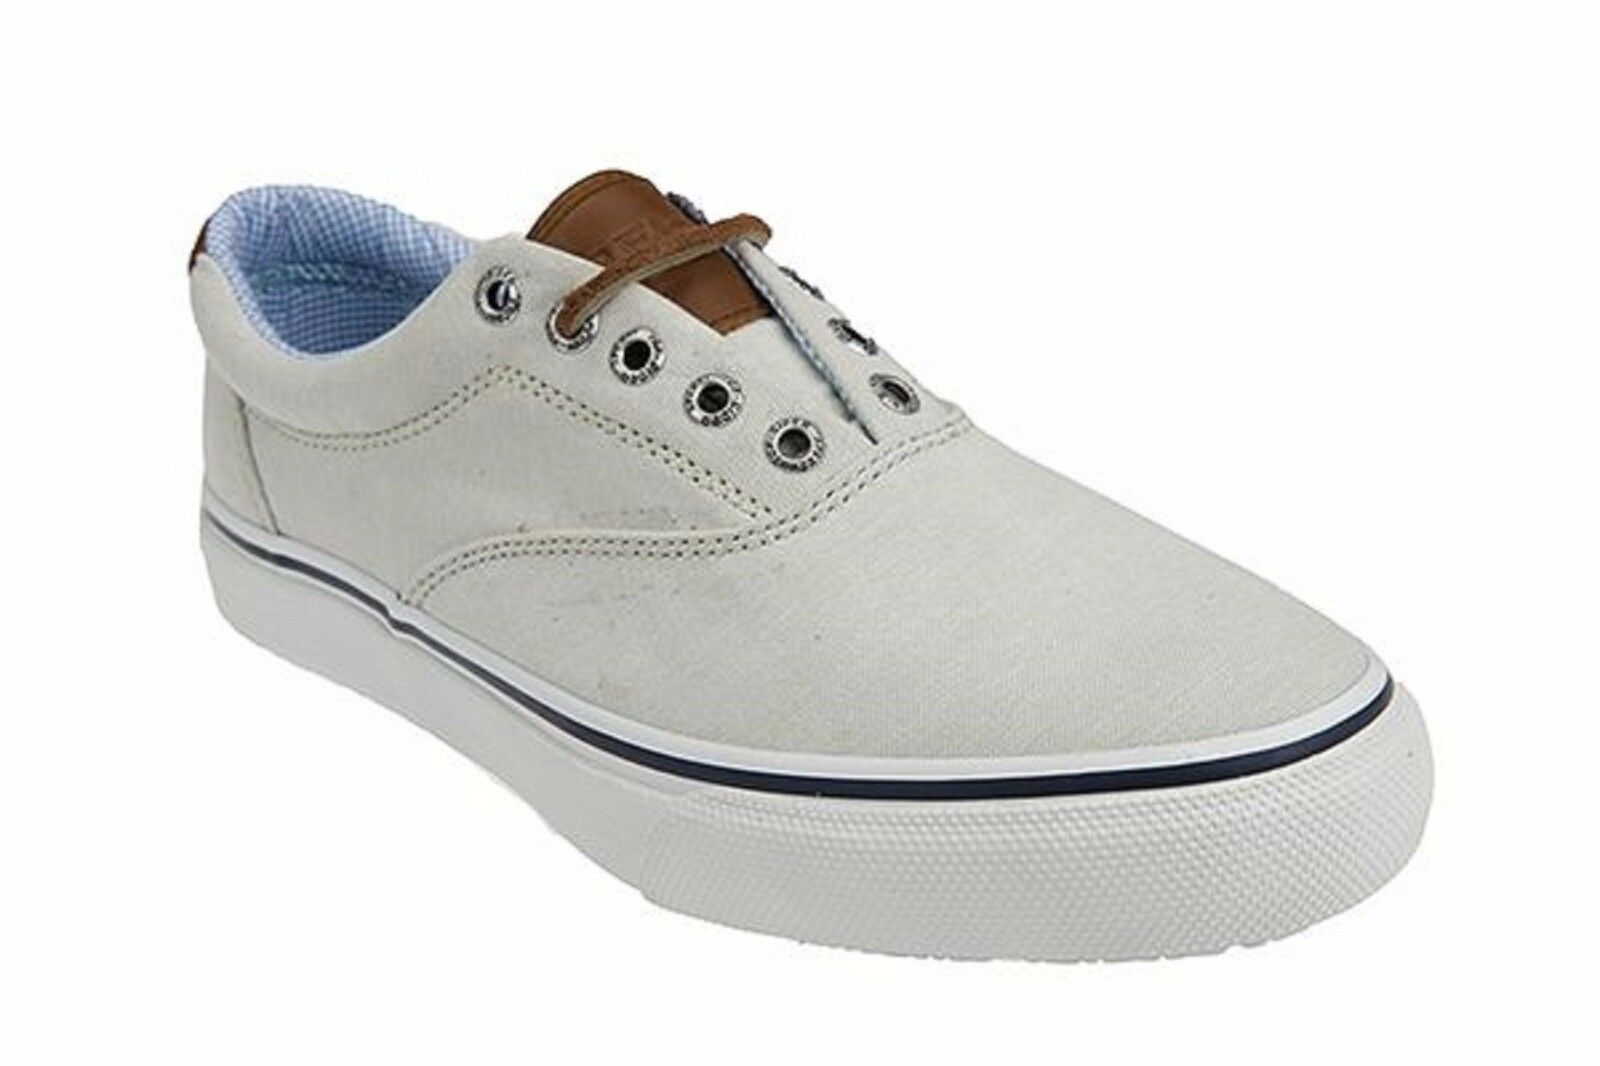 Scarpe casual da uomo SPERRY TOP SIDER 10831 STRIPER CVO CHAMBRAY Mn's (M) Green Canvas Casual Shoes